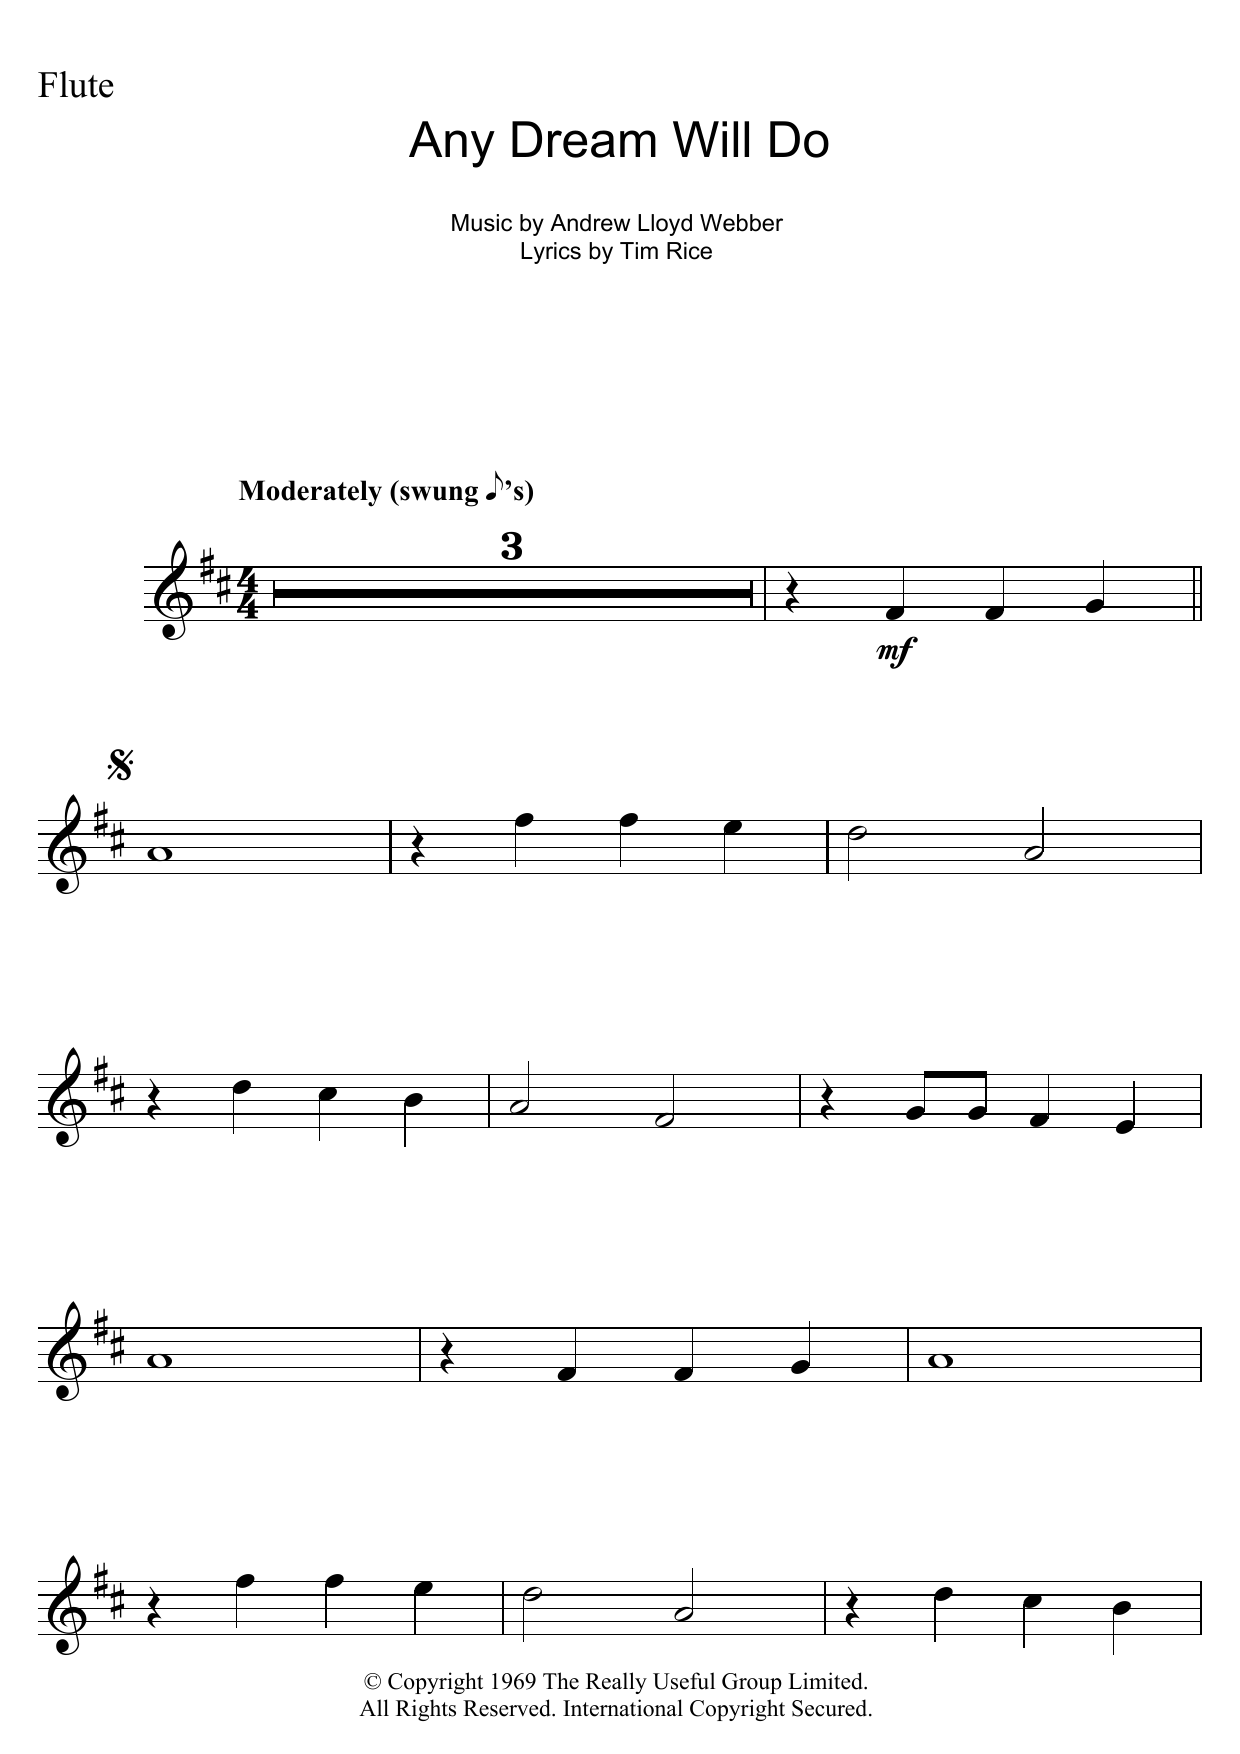 Any Dream Will Do (from Joseph And The Amazing Technicolor Dreamcoat) (Flute Solo)